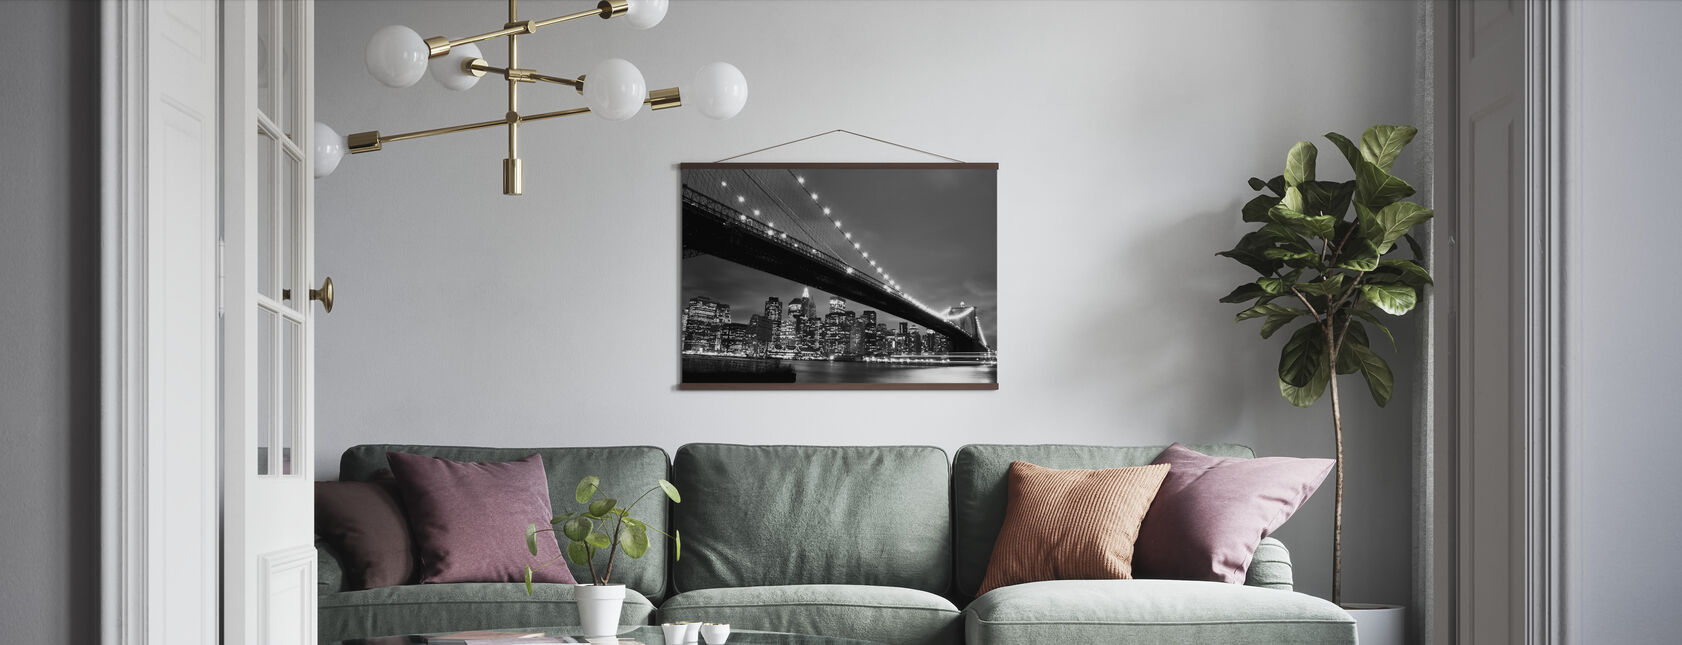 Brooklyn Bridge at Night - b/w - Poster - Living Room